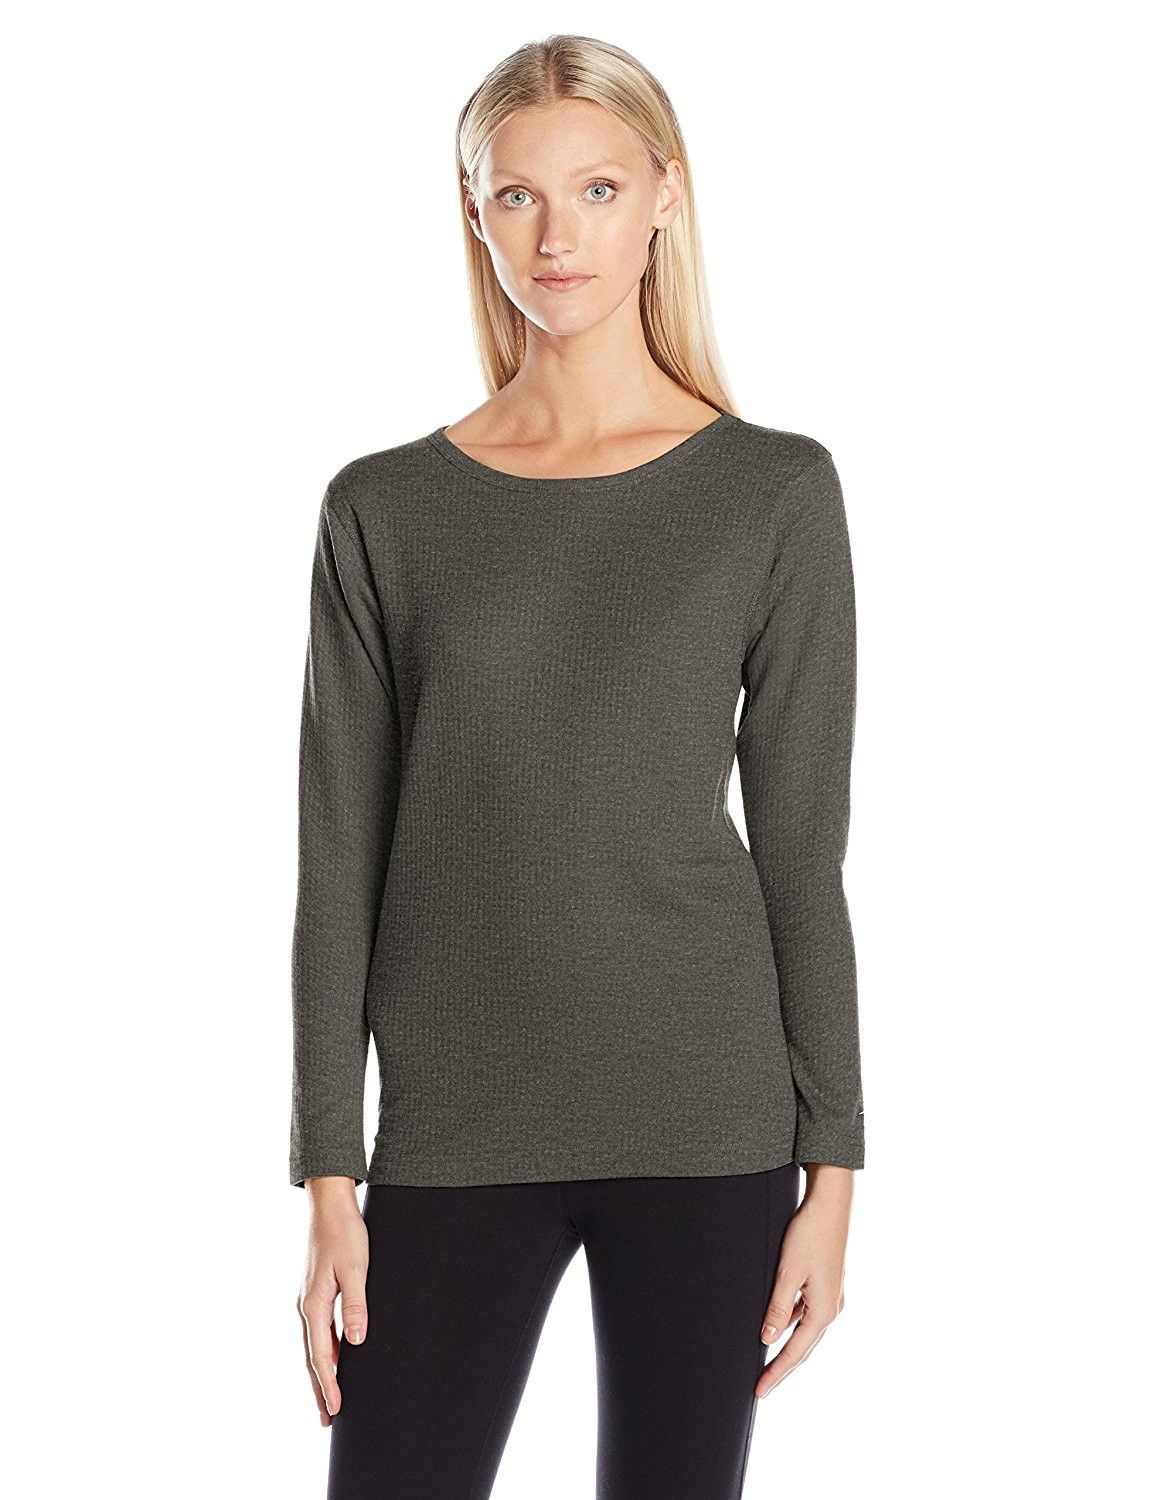 d1839622a047 Women's Mid Weight Wicking Thermal Shirt - Granite Heather - C012LOPX7GP, Women's Clothing, Active, Active Base Layers #women #fashion #clothing  #outfits ...